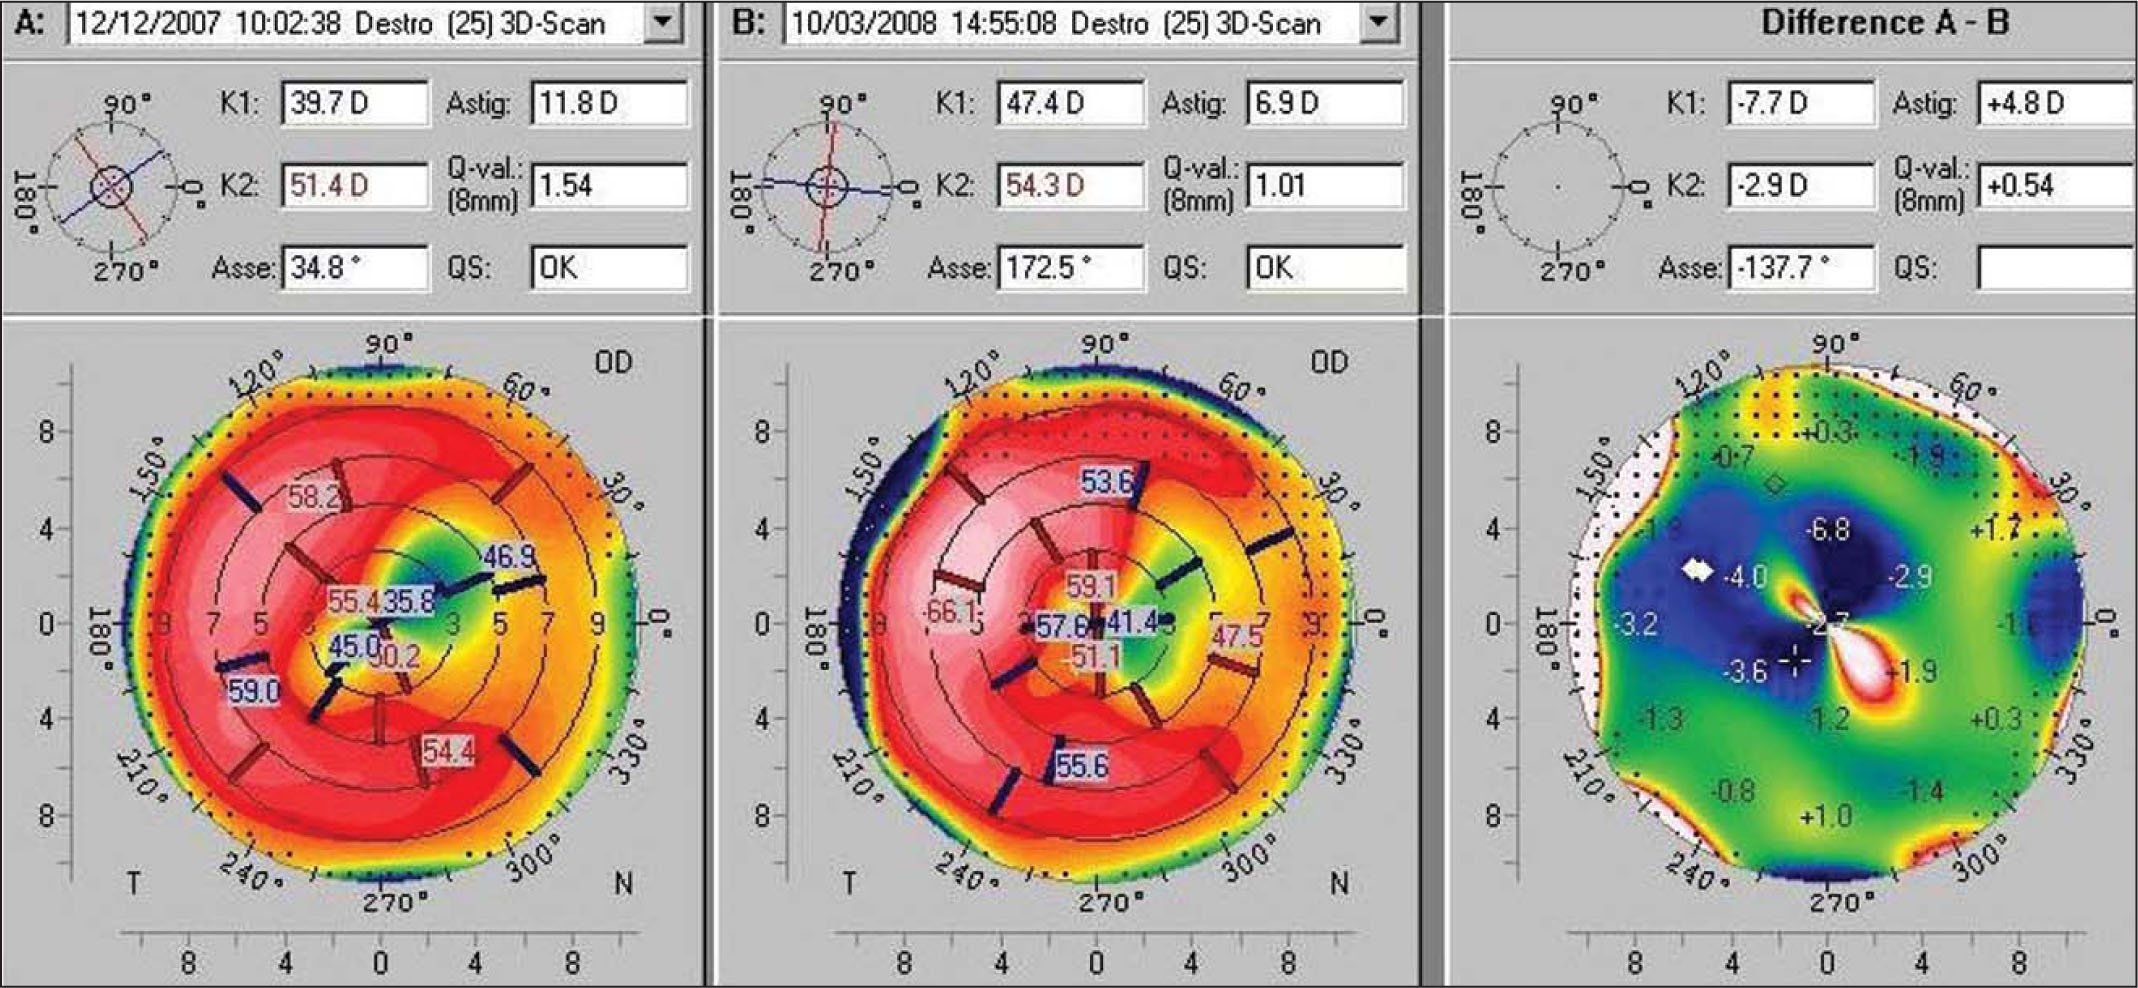 Comparison of A) Preoperative and B) 3-Month Postoperative Keratometric and Sagittal Anterior Maps Taken by the Pentacam (Oculus Optikgeräte). The Panel on the Right Shows the Difference Calculated for Each Map Between A Minus B.